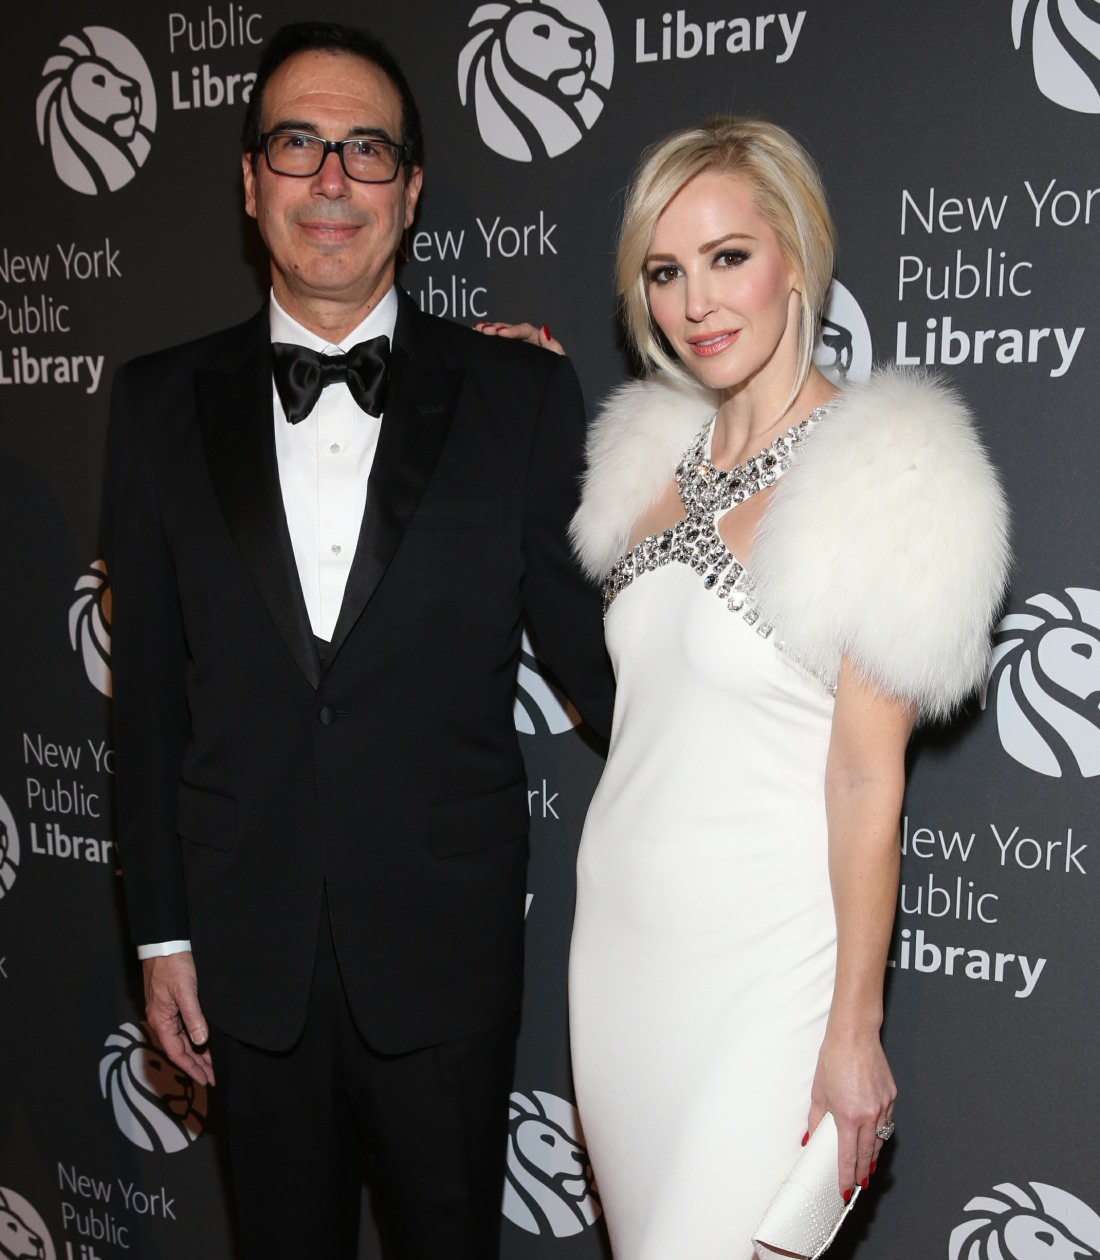 New York Public Library's 2016 Library Lions Gala